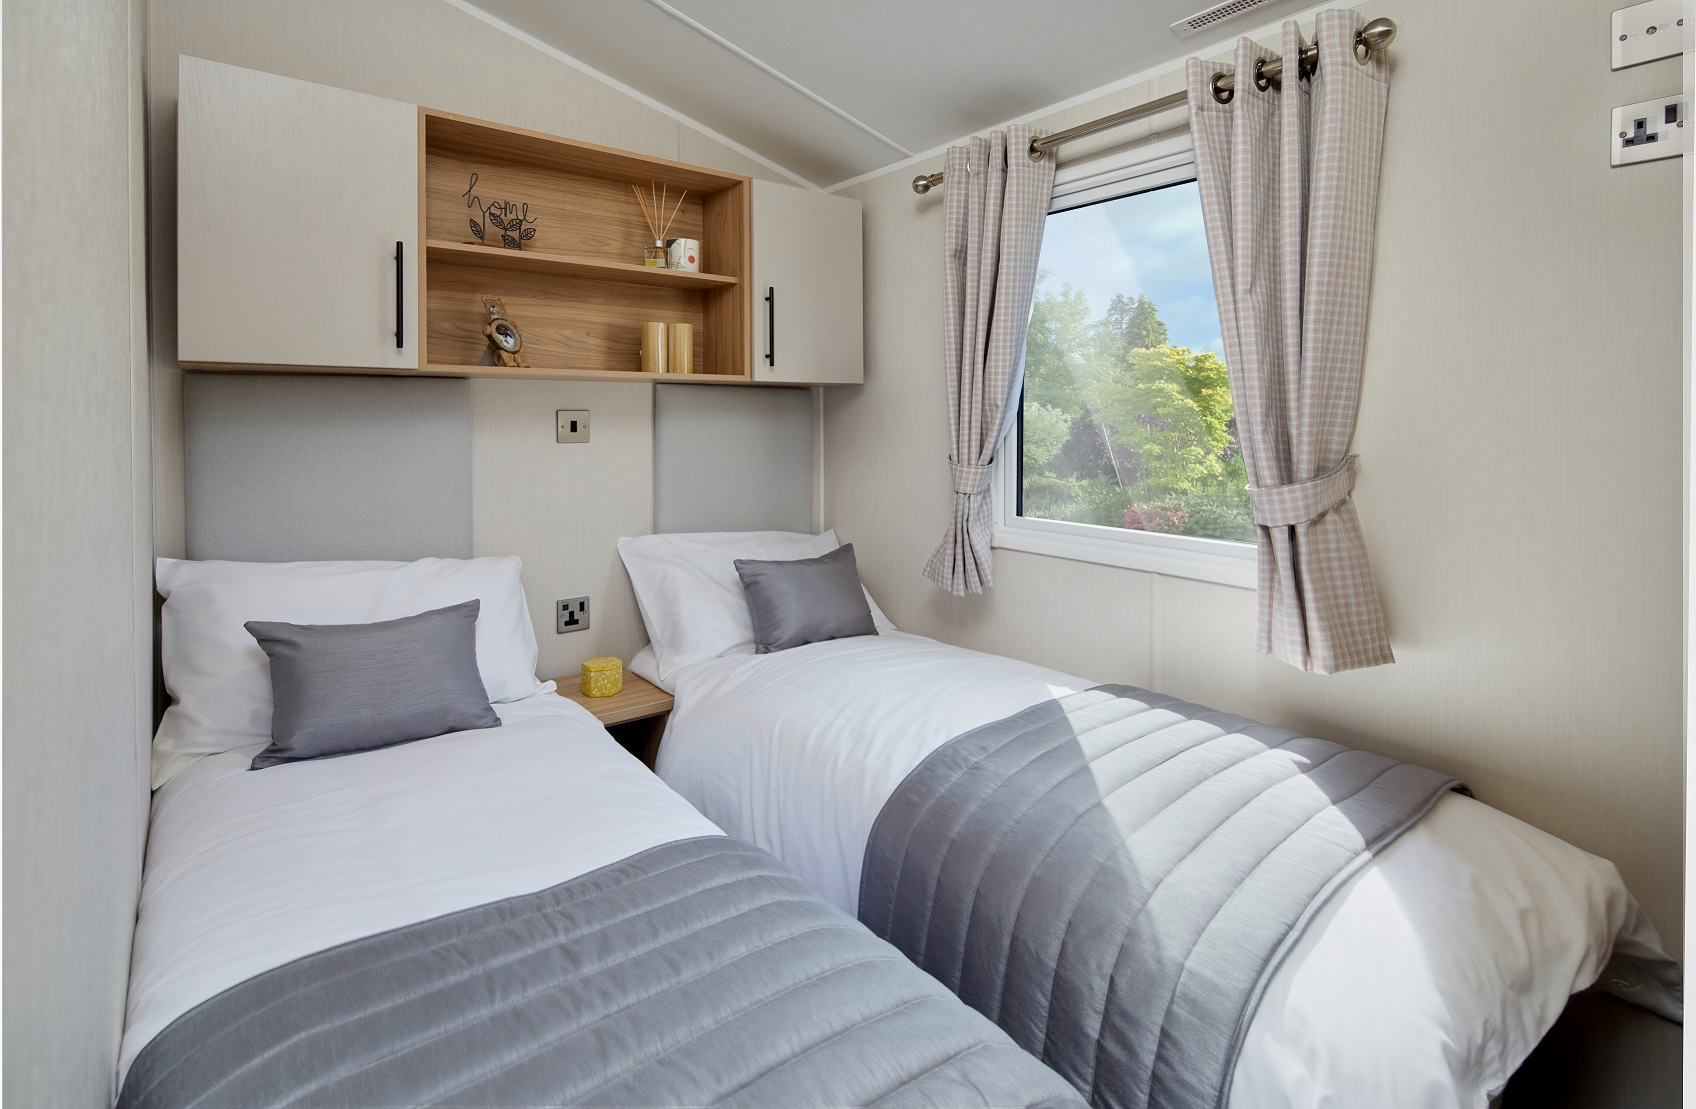 Willerby Manor: New Static Caravans and Holiday Homes for Sale, Available at Factory Image 3